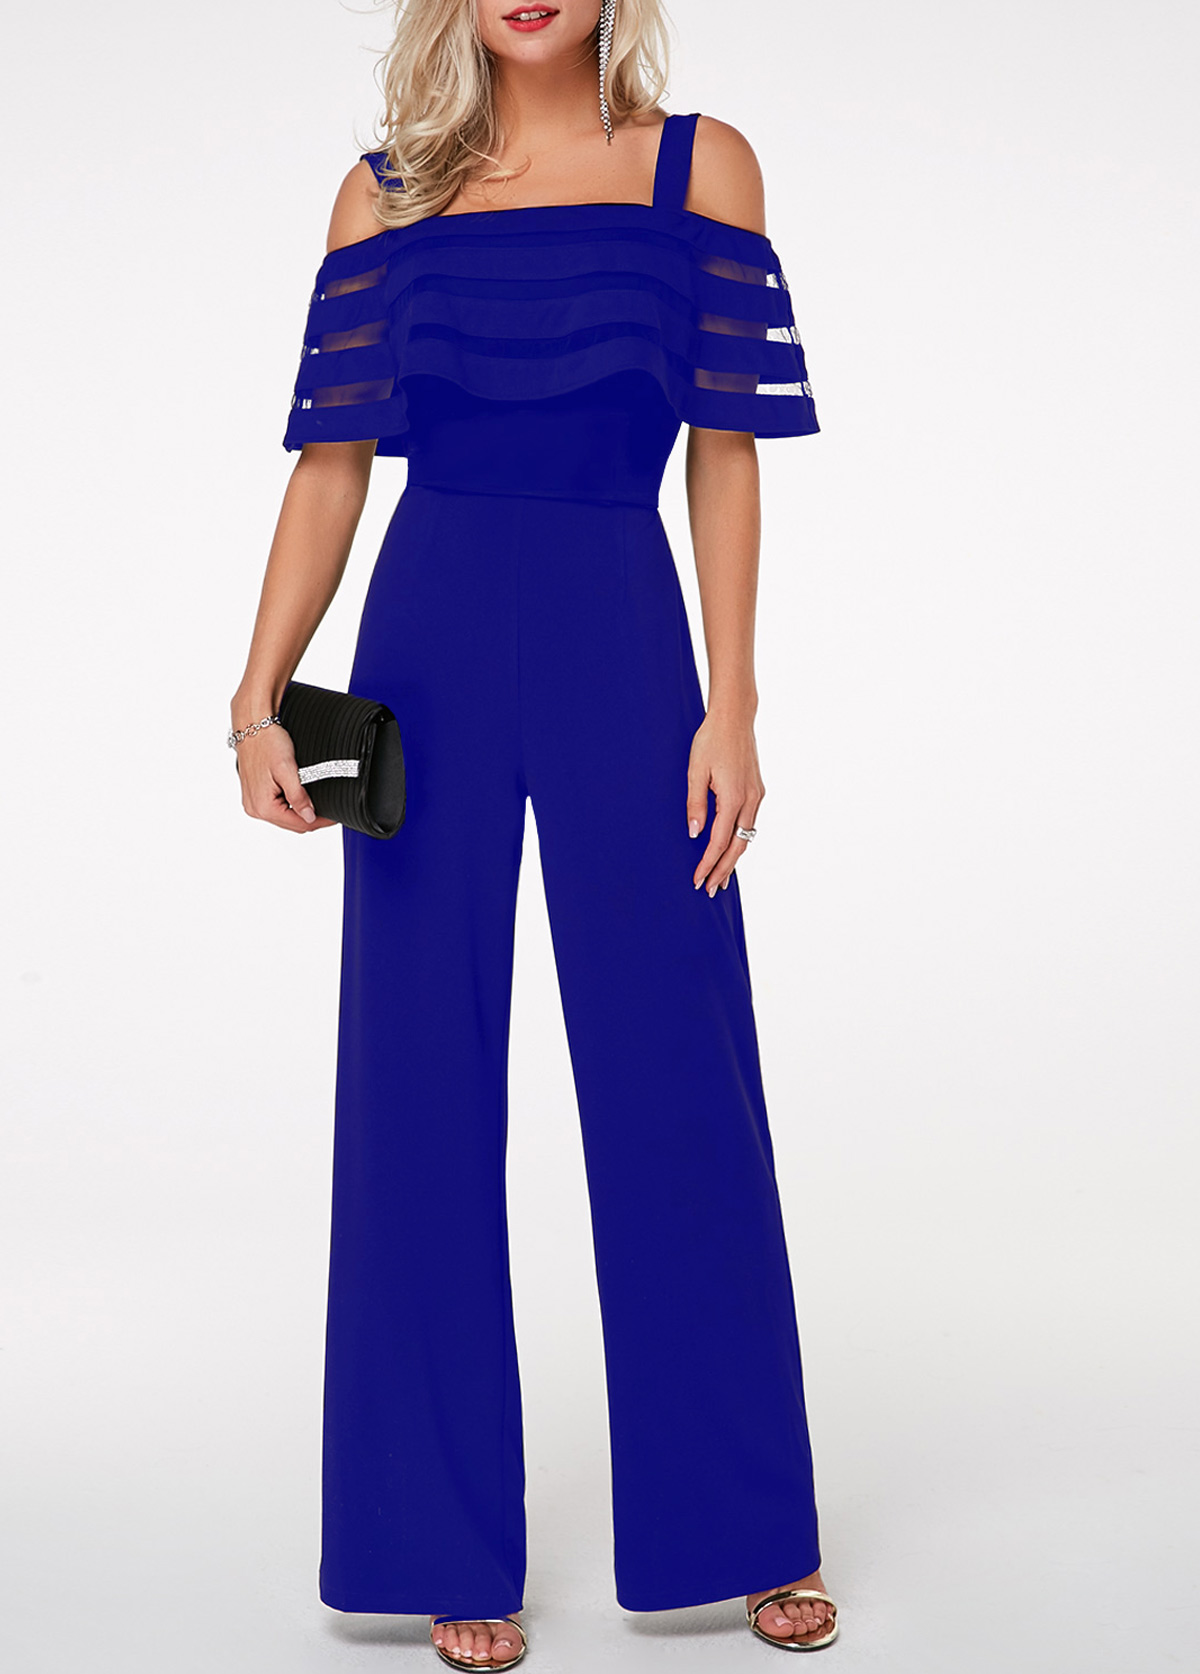 Zipper Back Strappy Cold Shoulder Overlay Jumpsuit